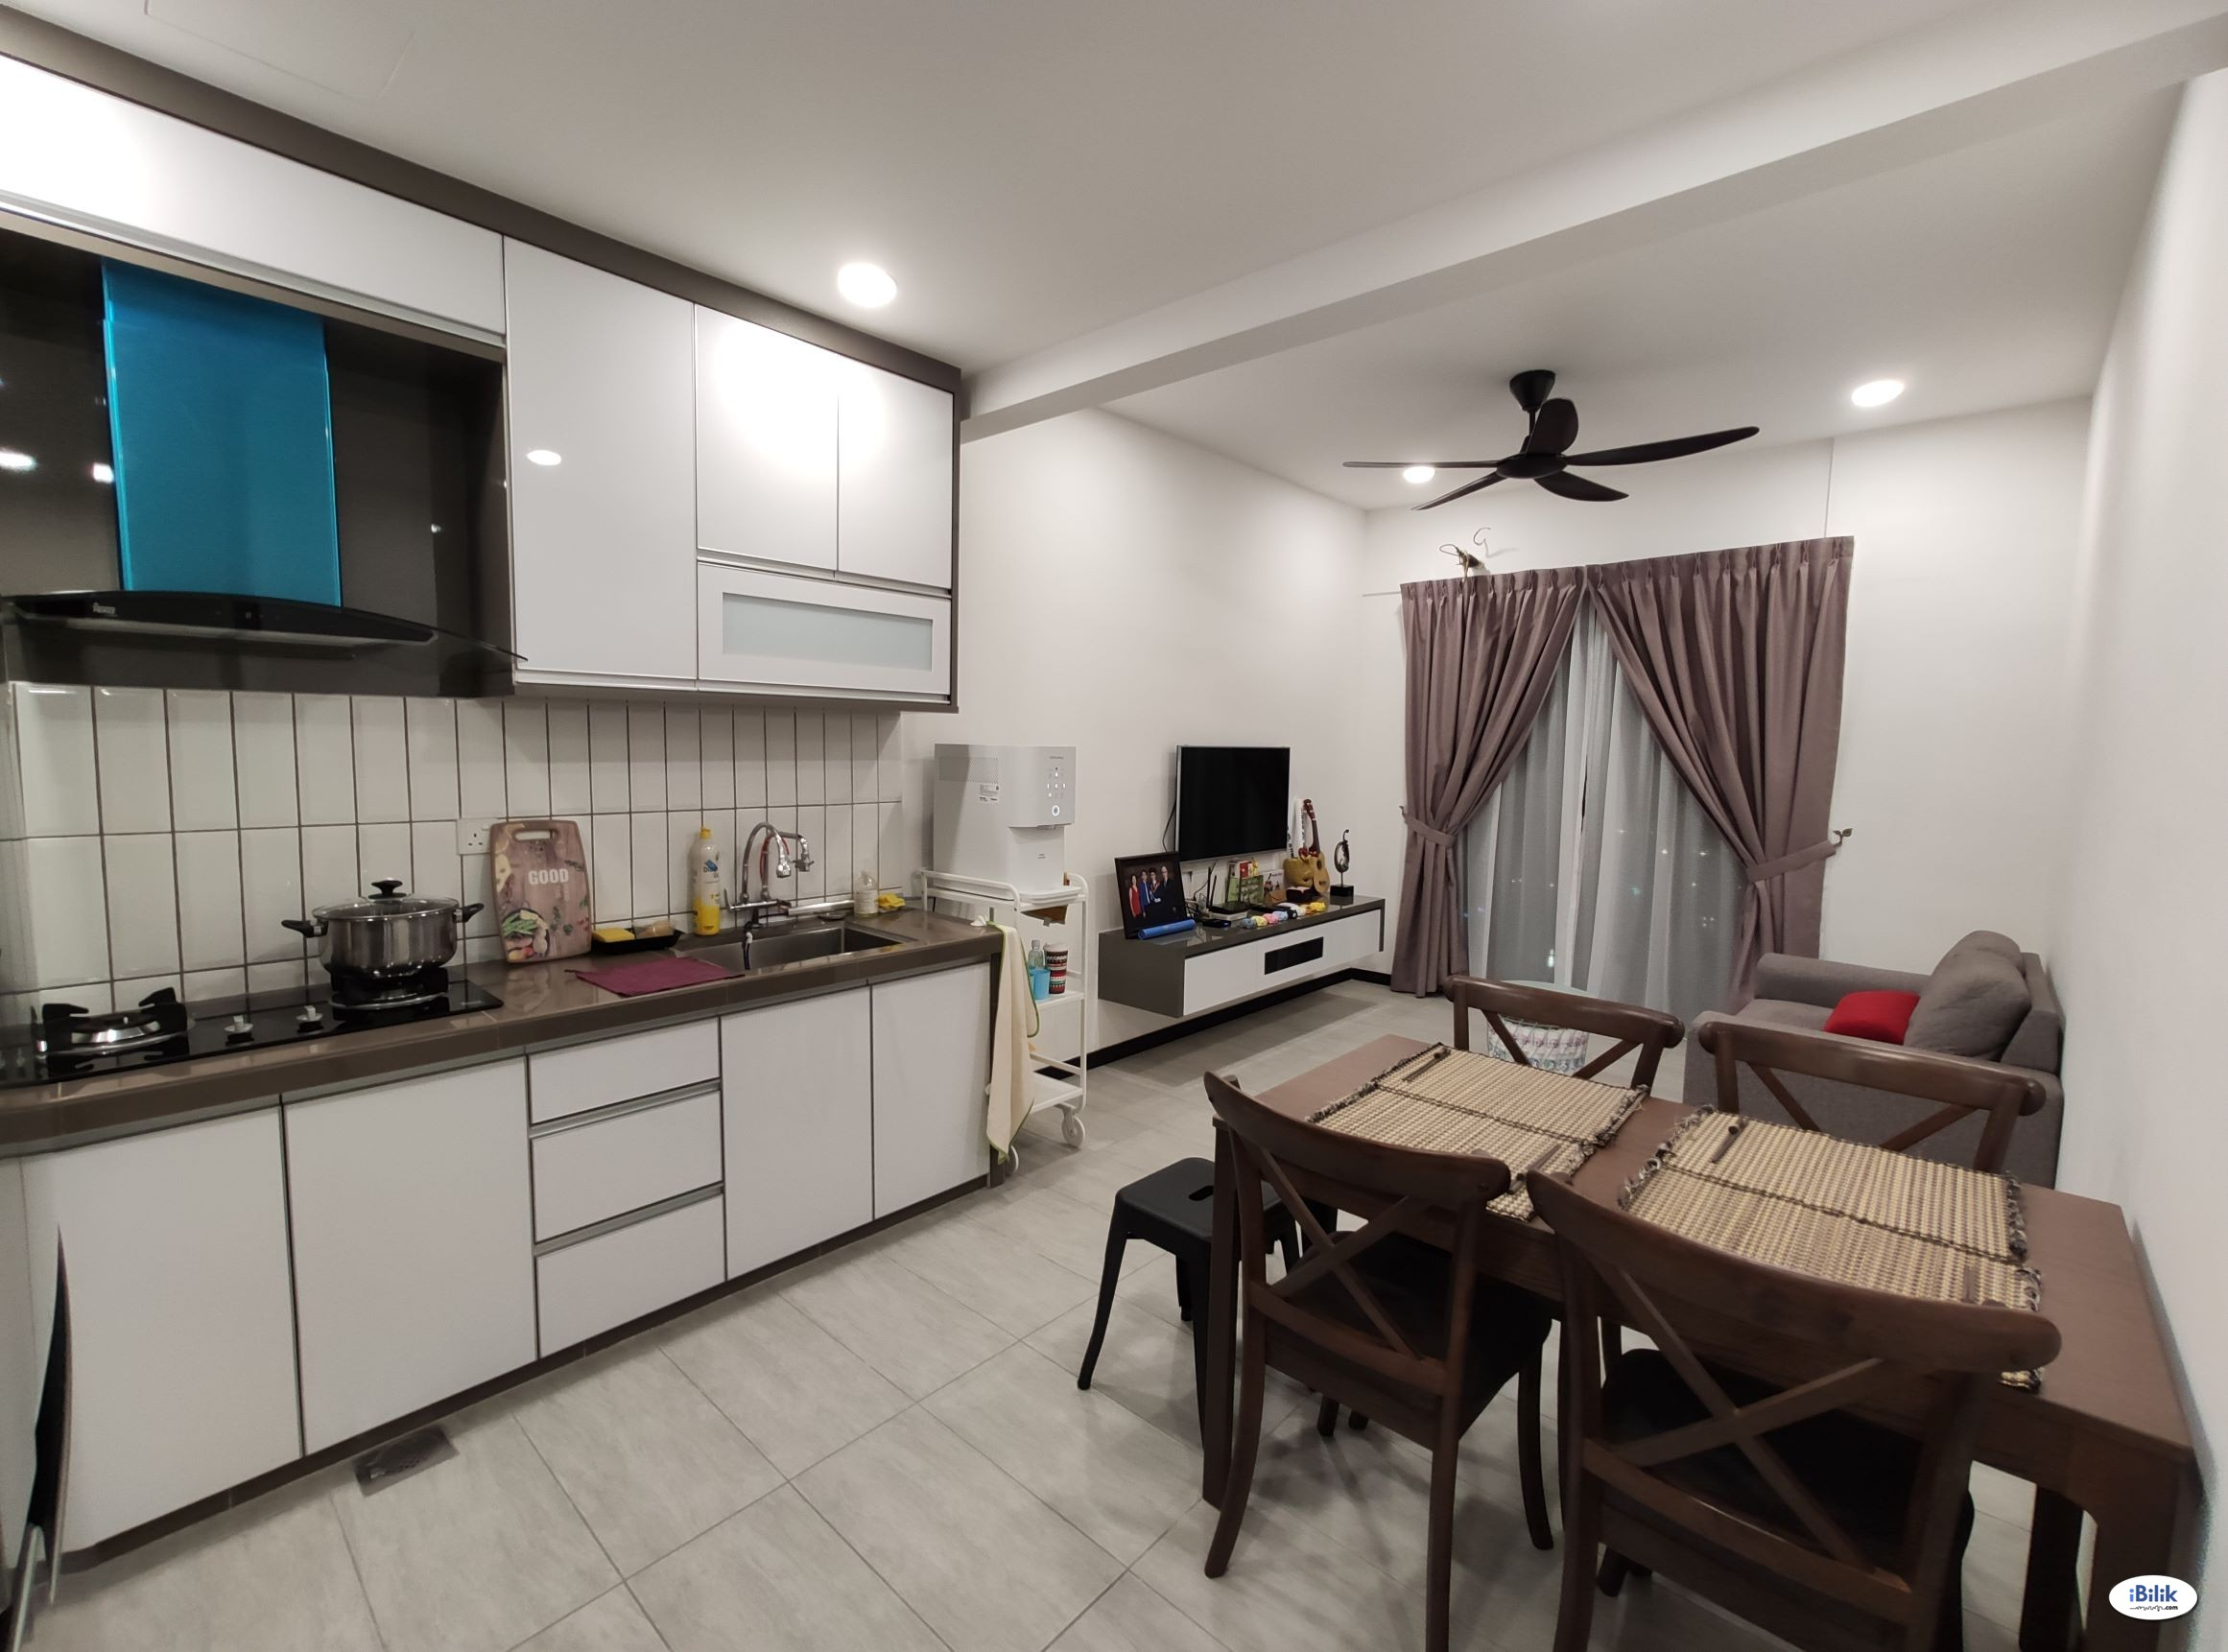 Room - Shared House at Utropolis Batu Kawan, Batu Kawan